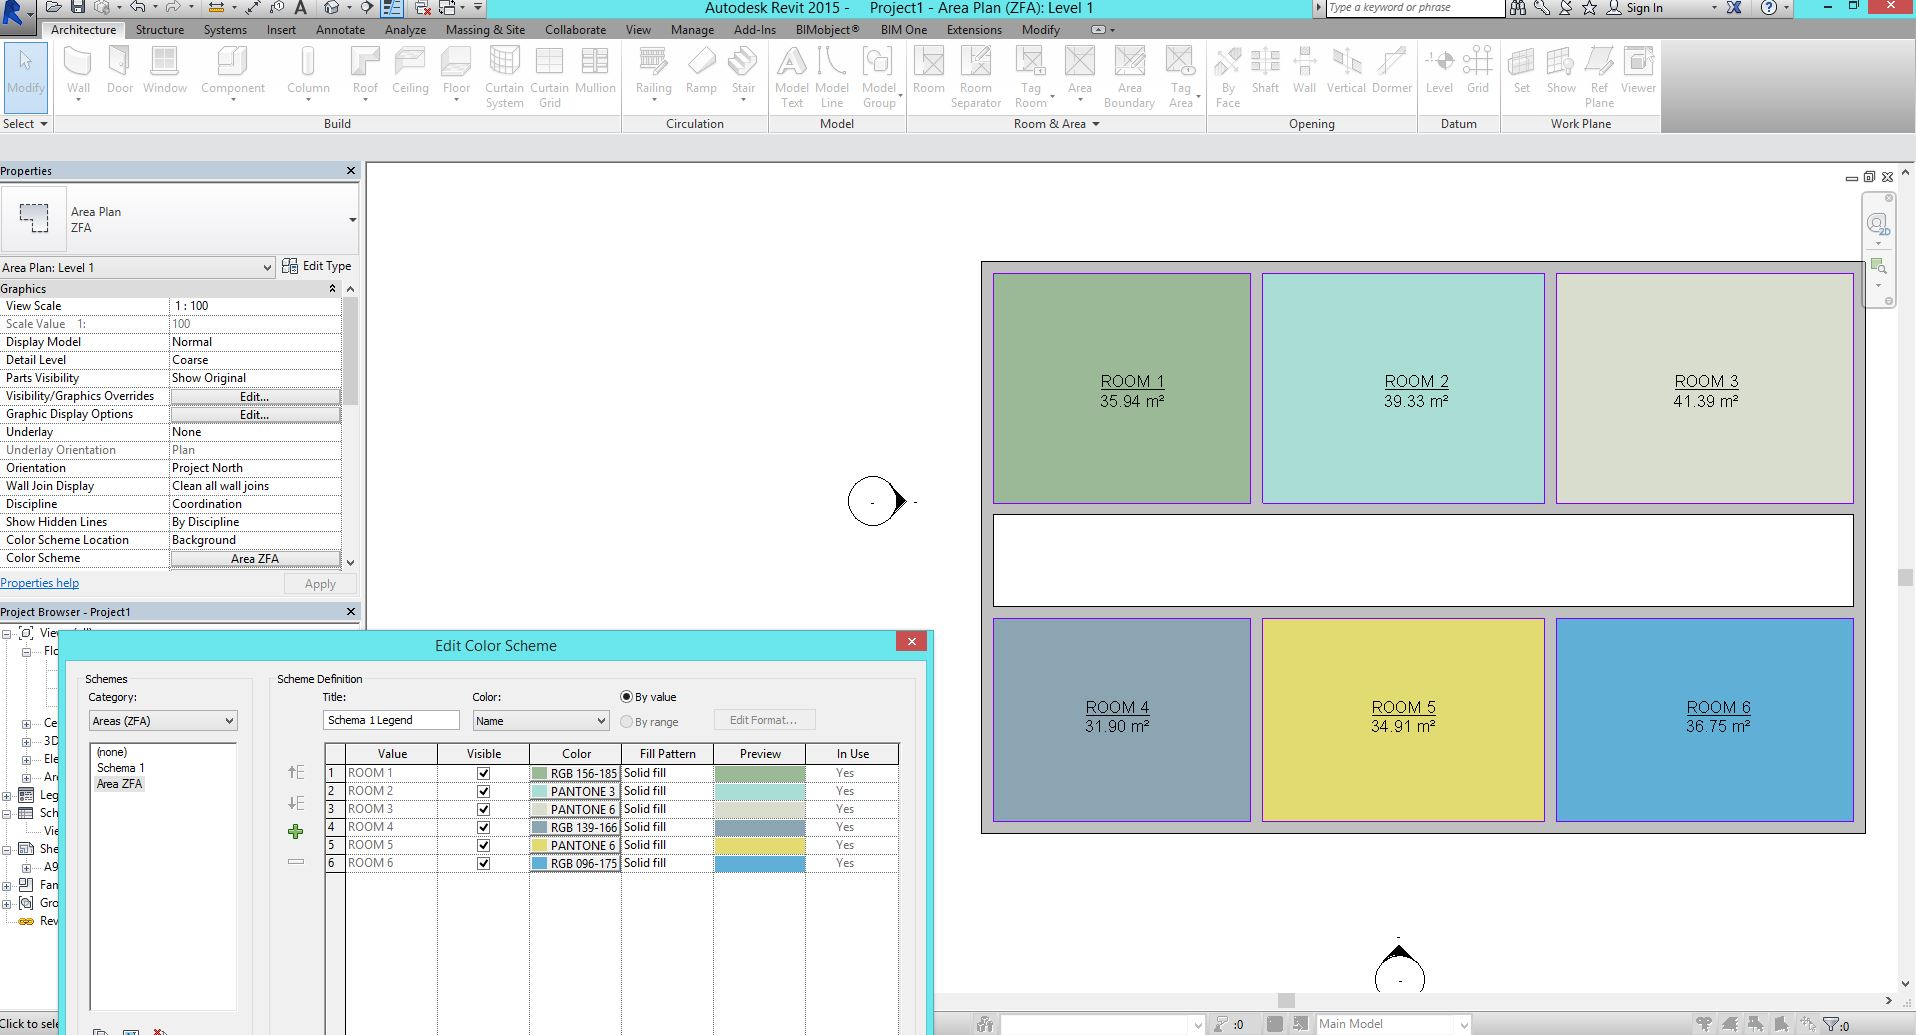 Revit Room Colour Showing On Wall